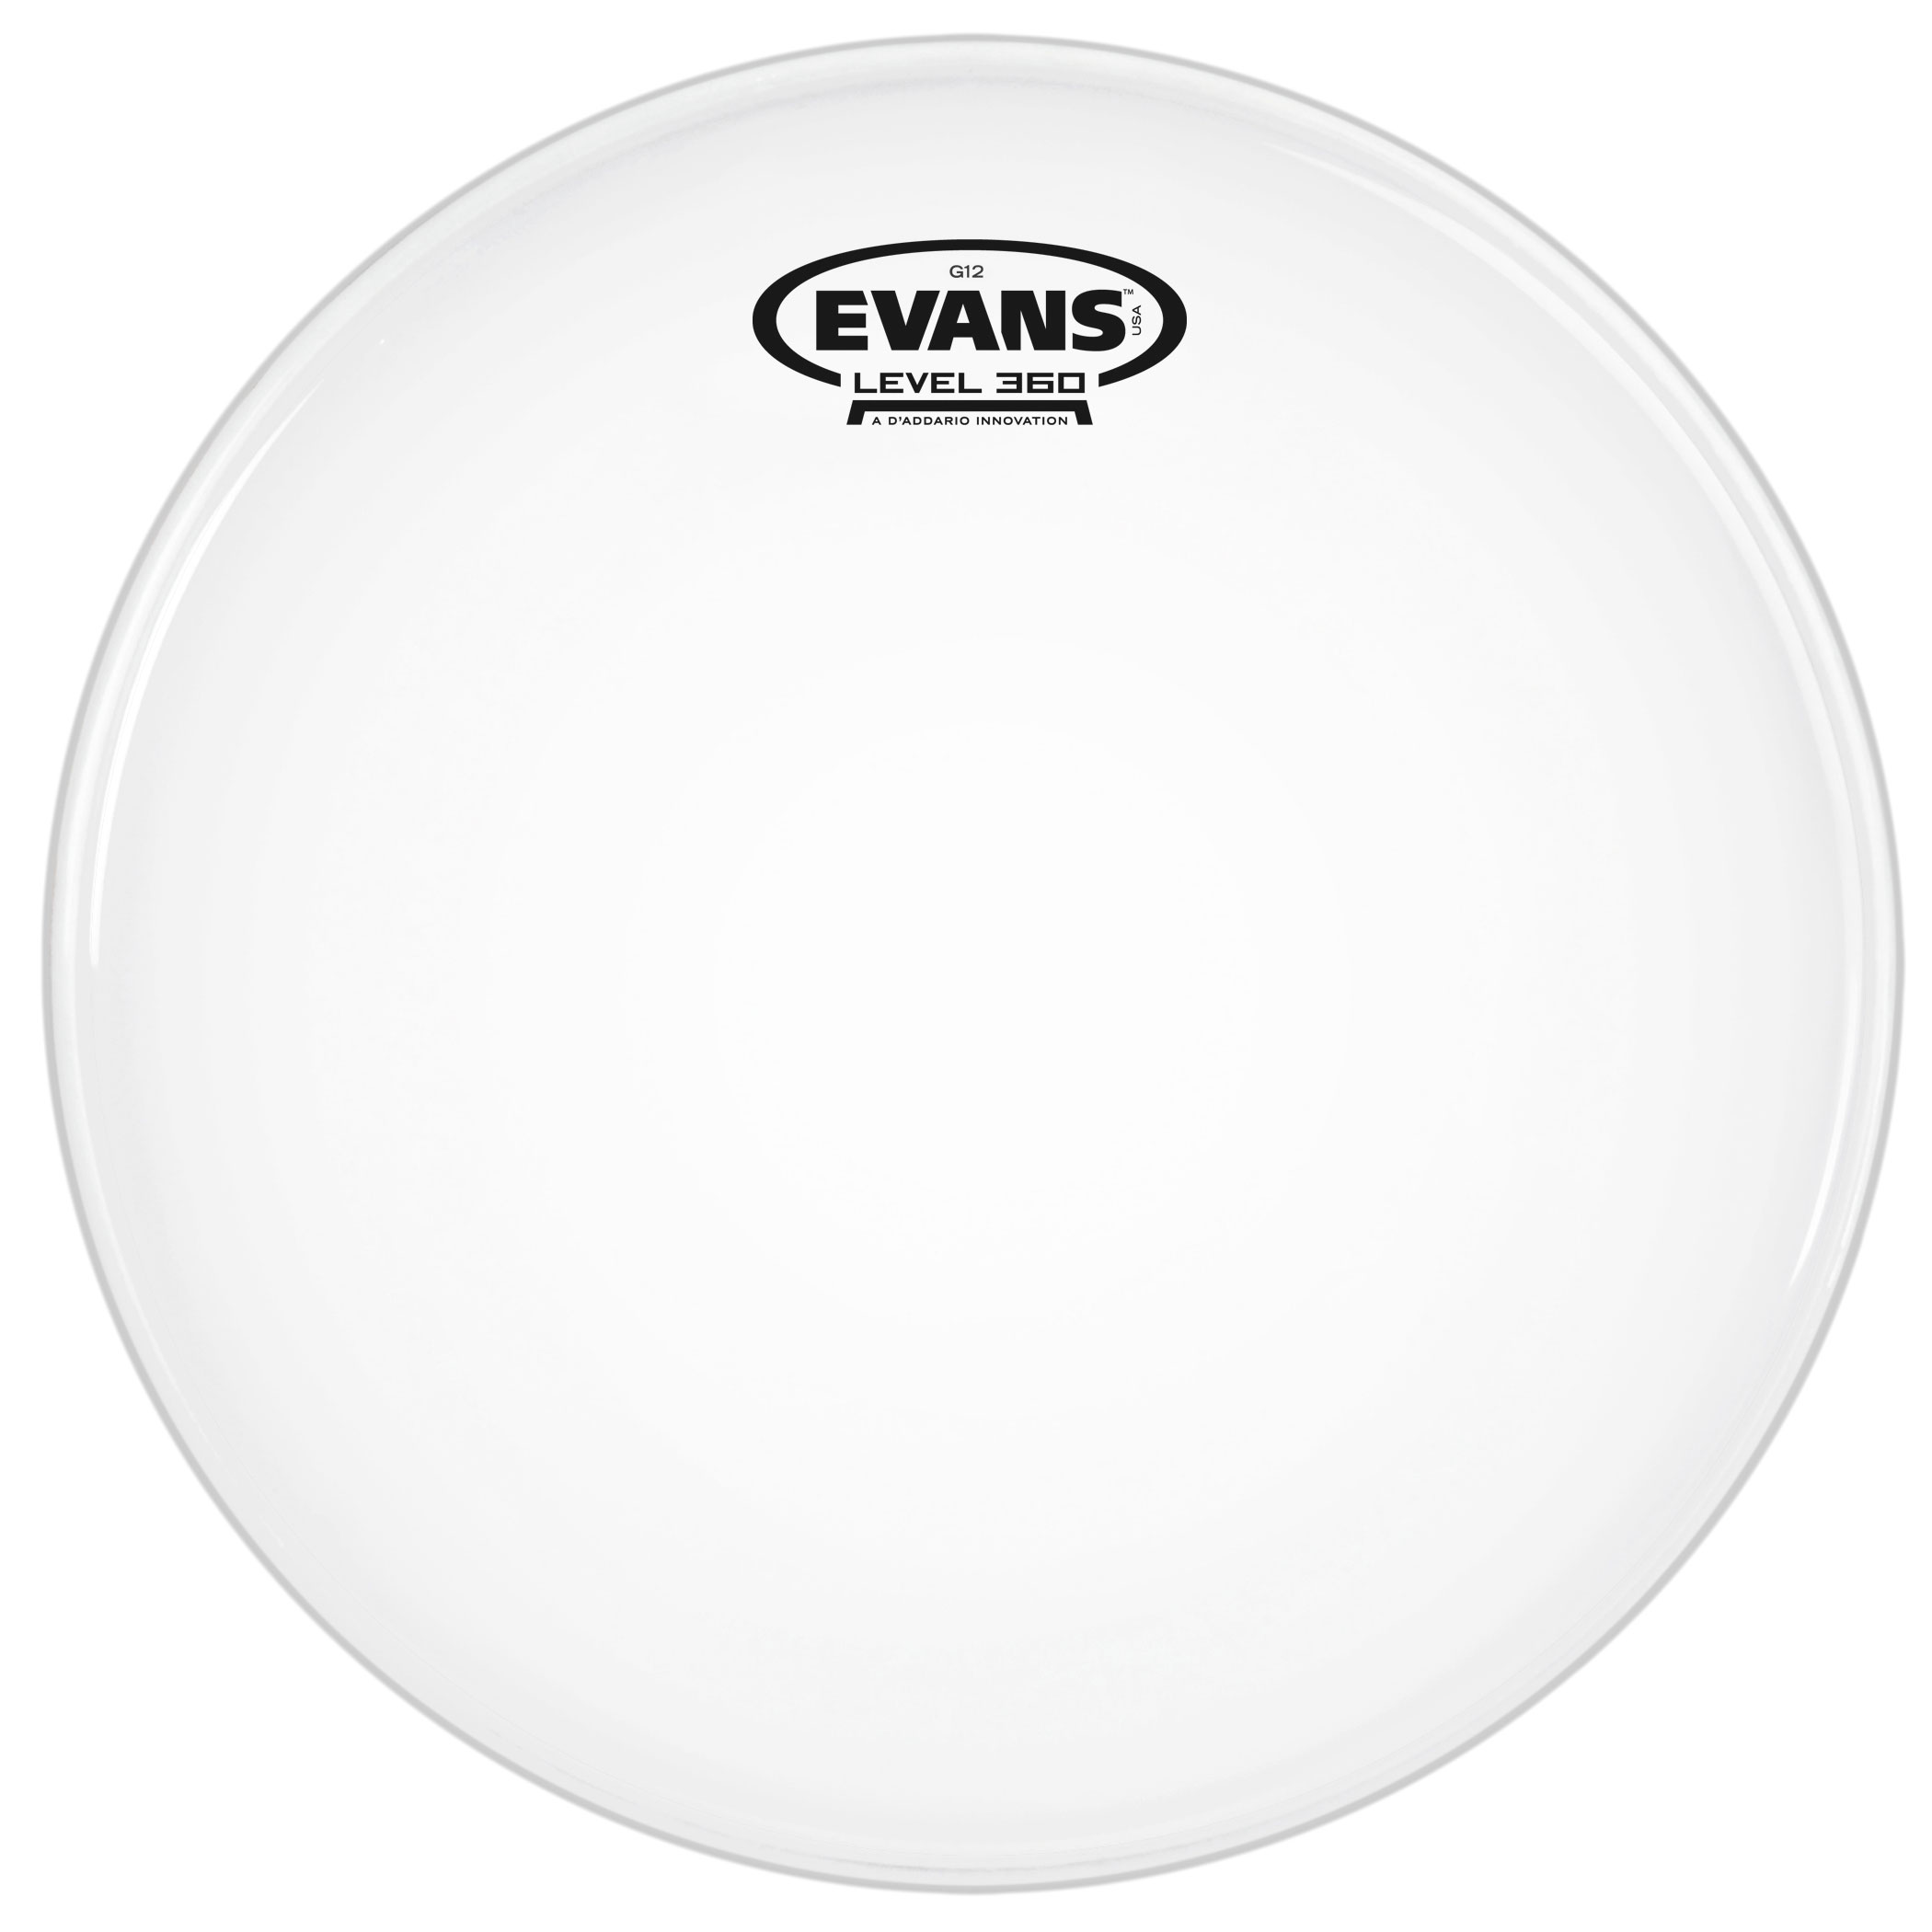 "Evans 8"" G12 Coated Head"